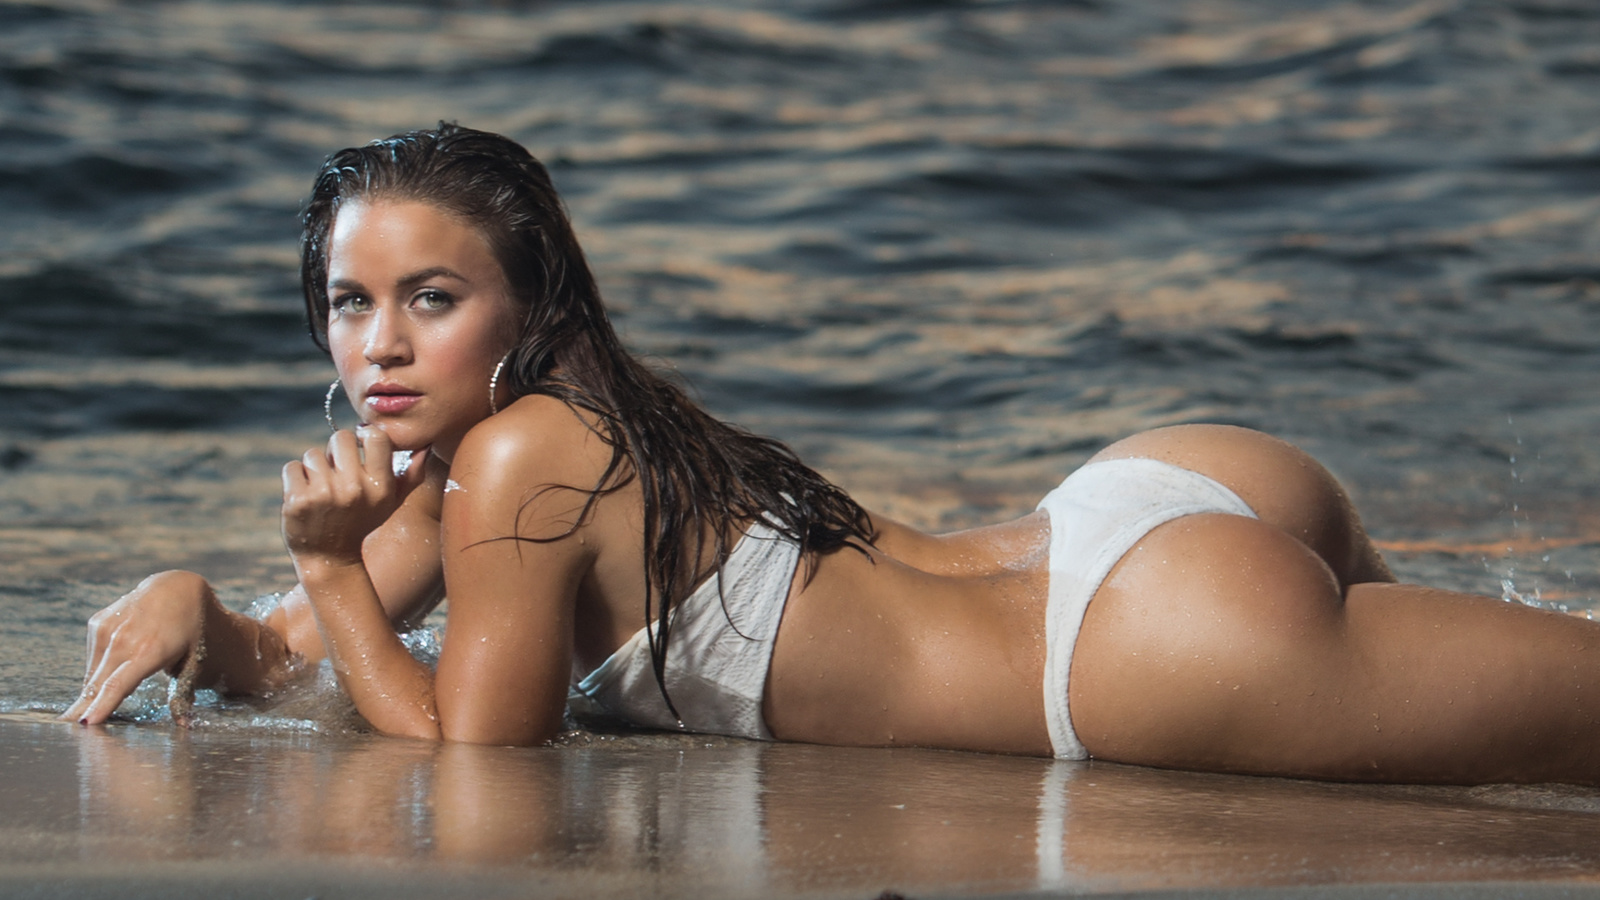 man-pictures-of-girls-in-wet-bikinis